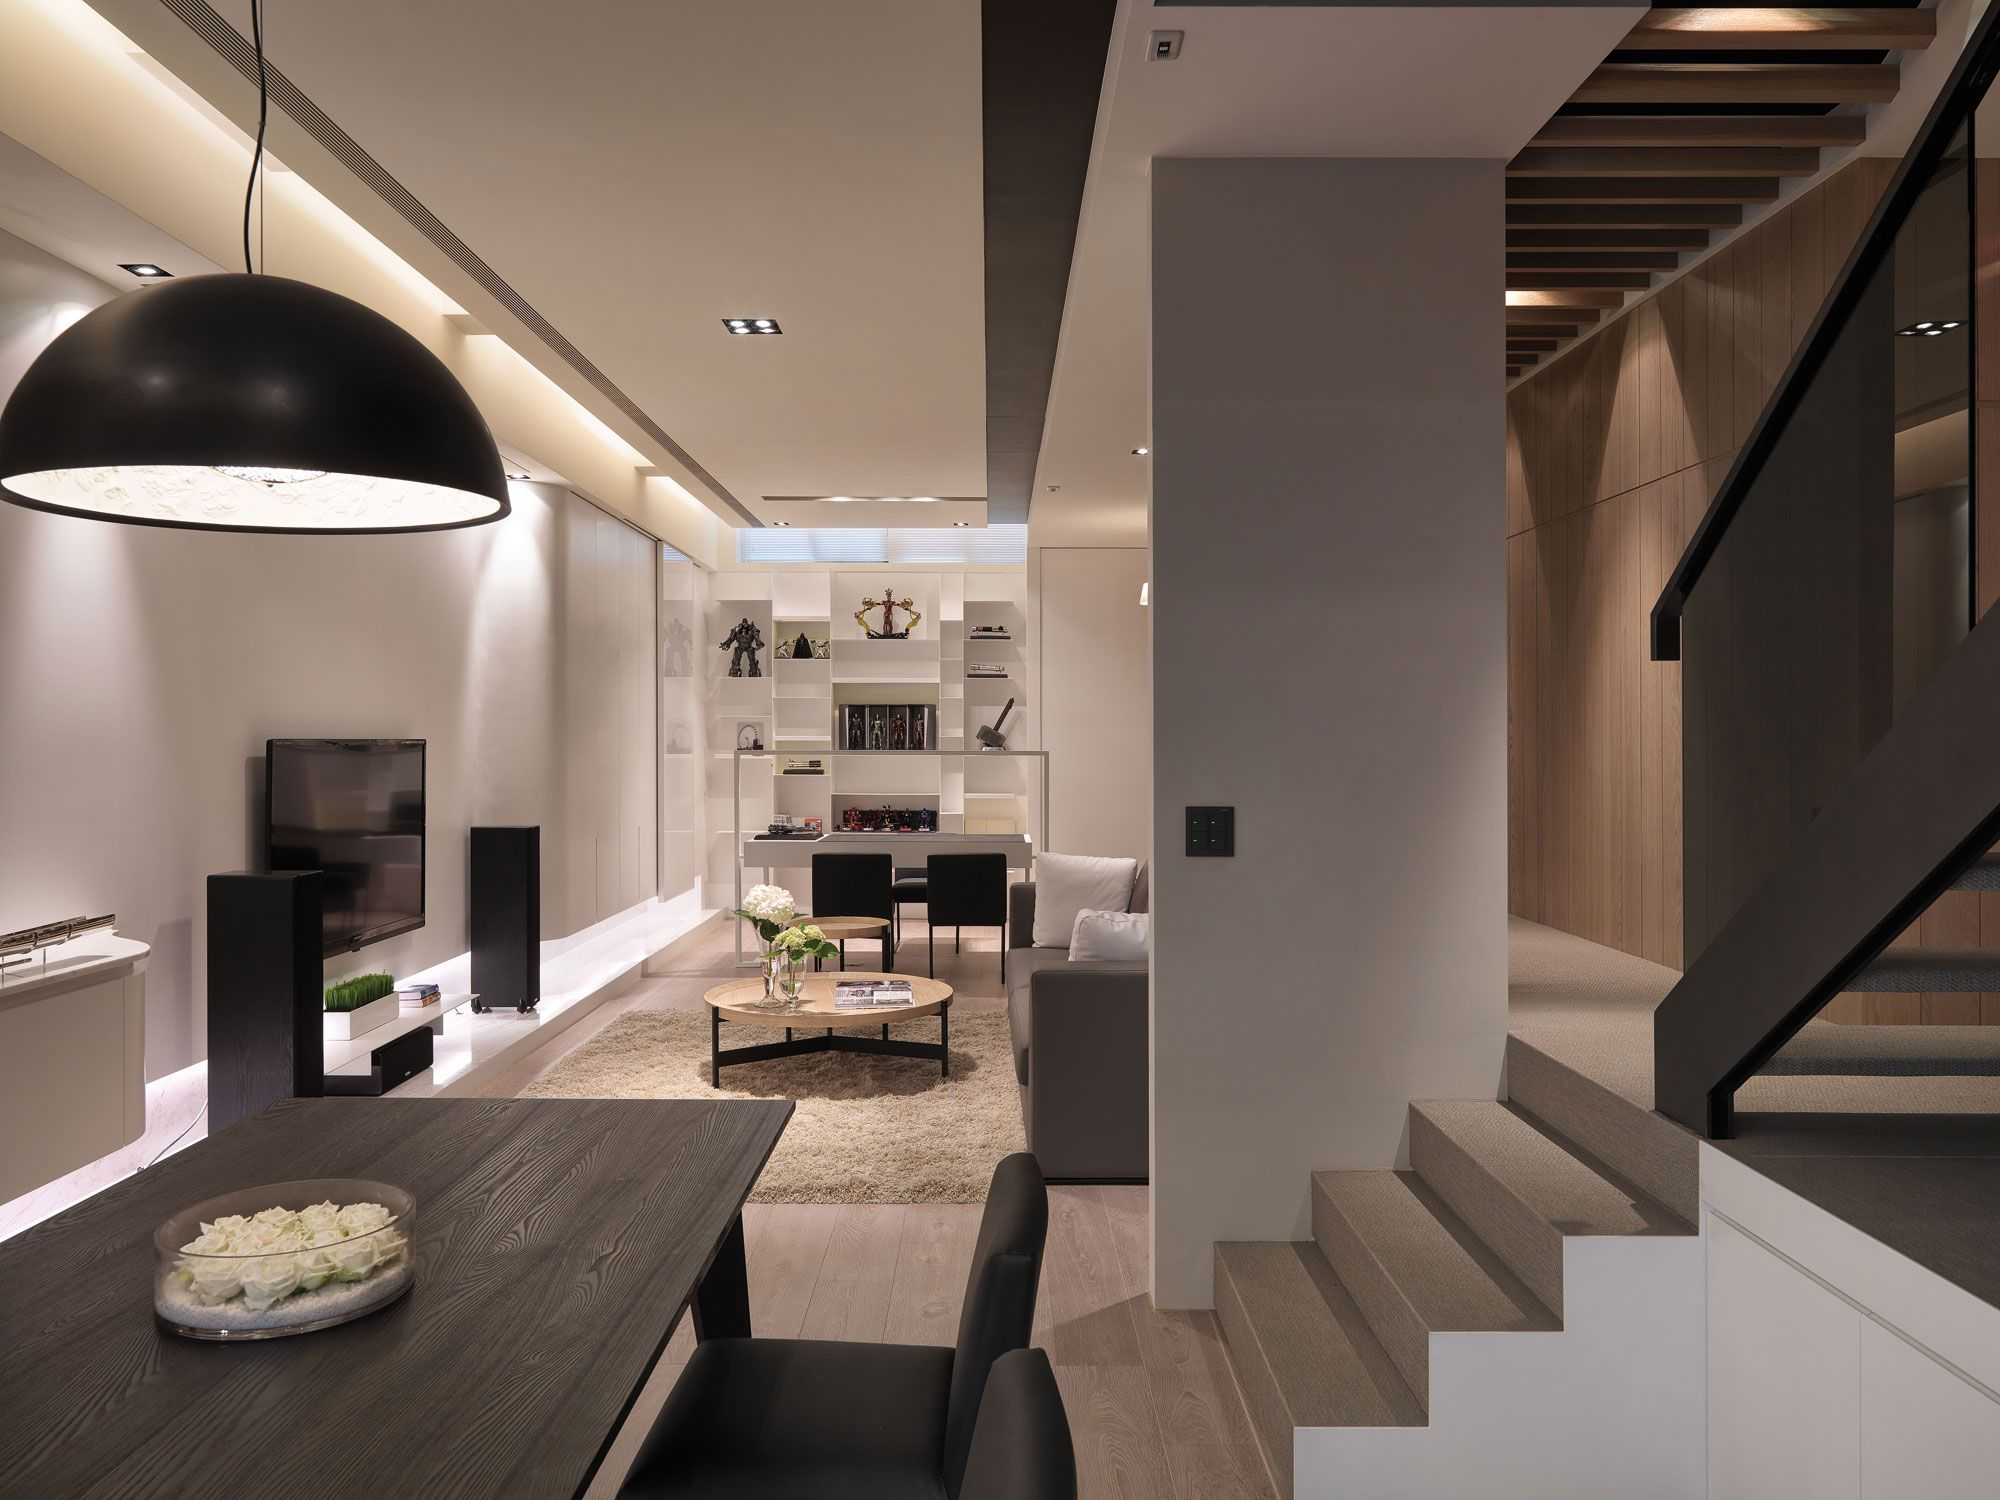 Multilevel contemporary apartment by wch studio caandesign architecture and home design blog - How to design a studi apatment ...